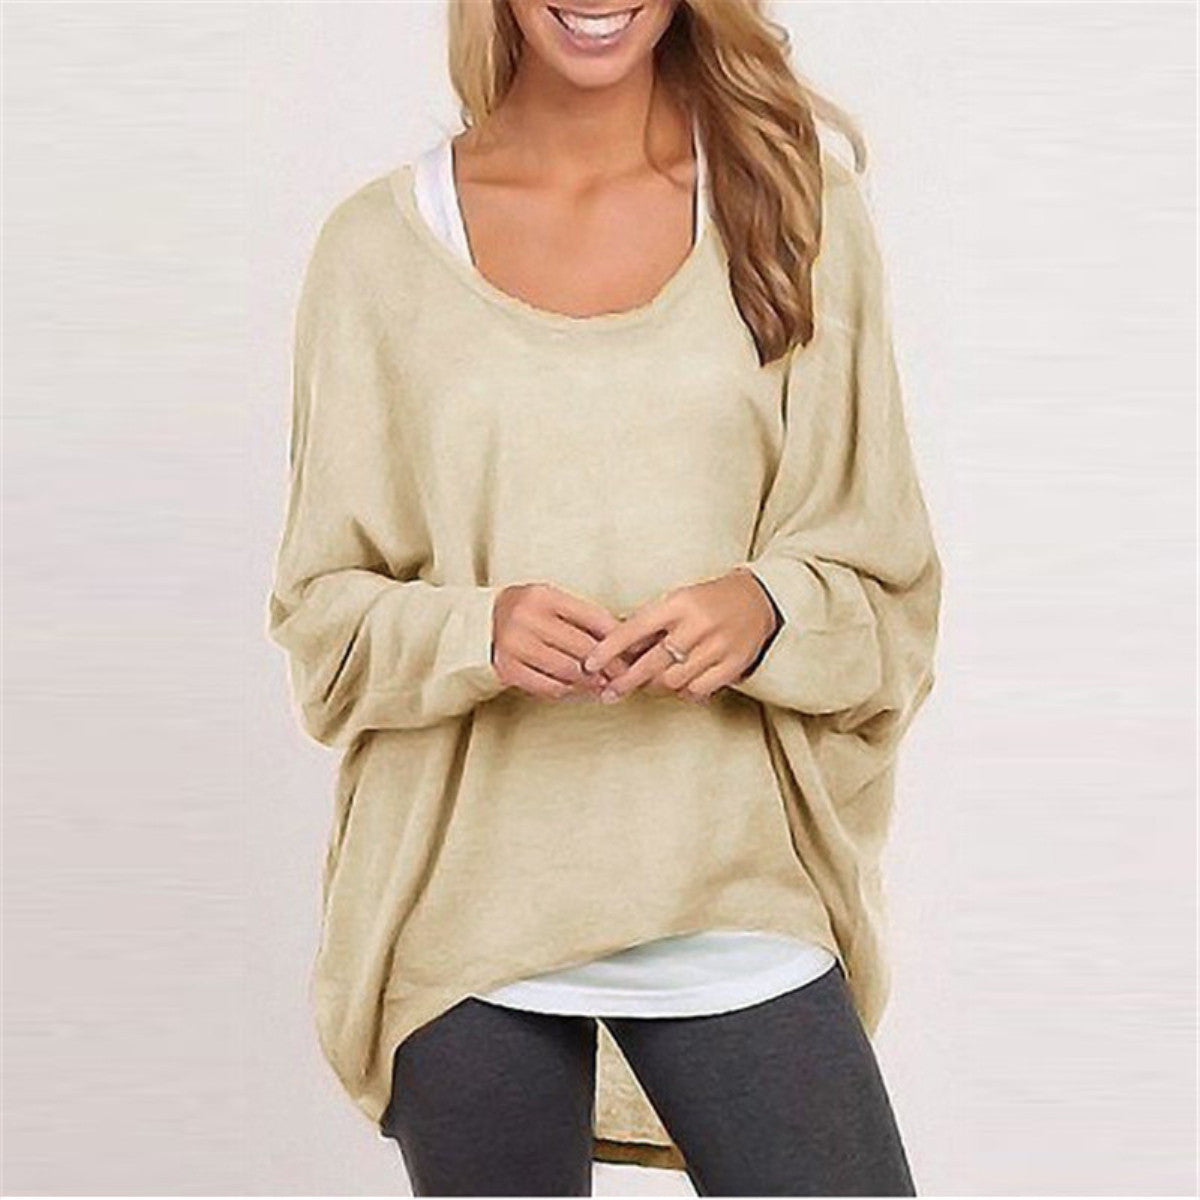 Beige / LWomen Sweater Jumper Pullover Batwing Long Sleeve Casual Loose Solid Blouse Shirt Top Plus